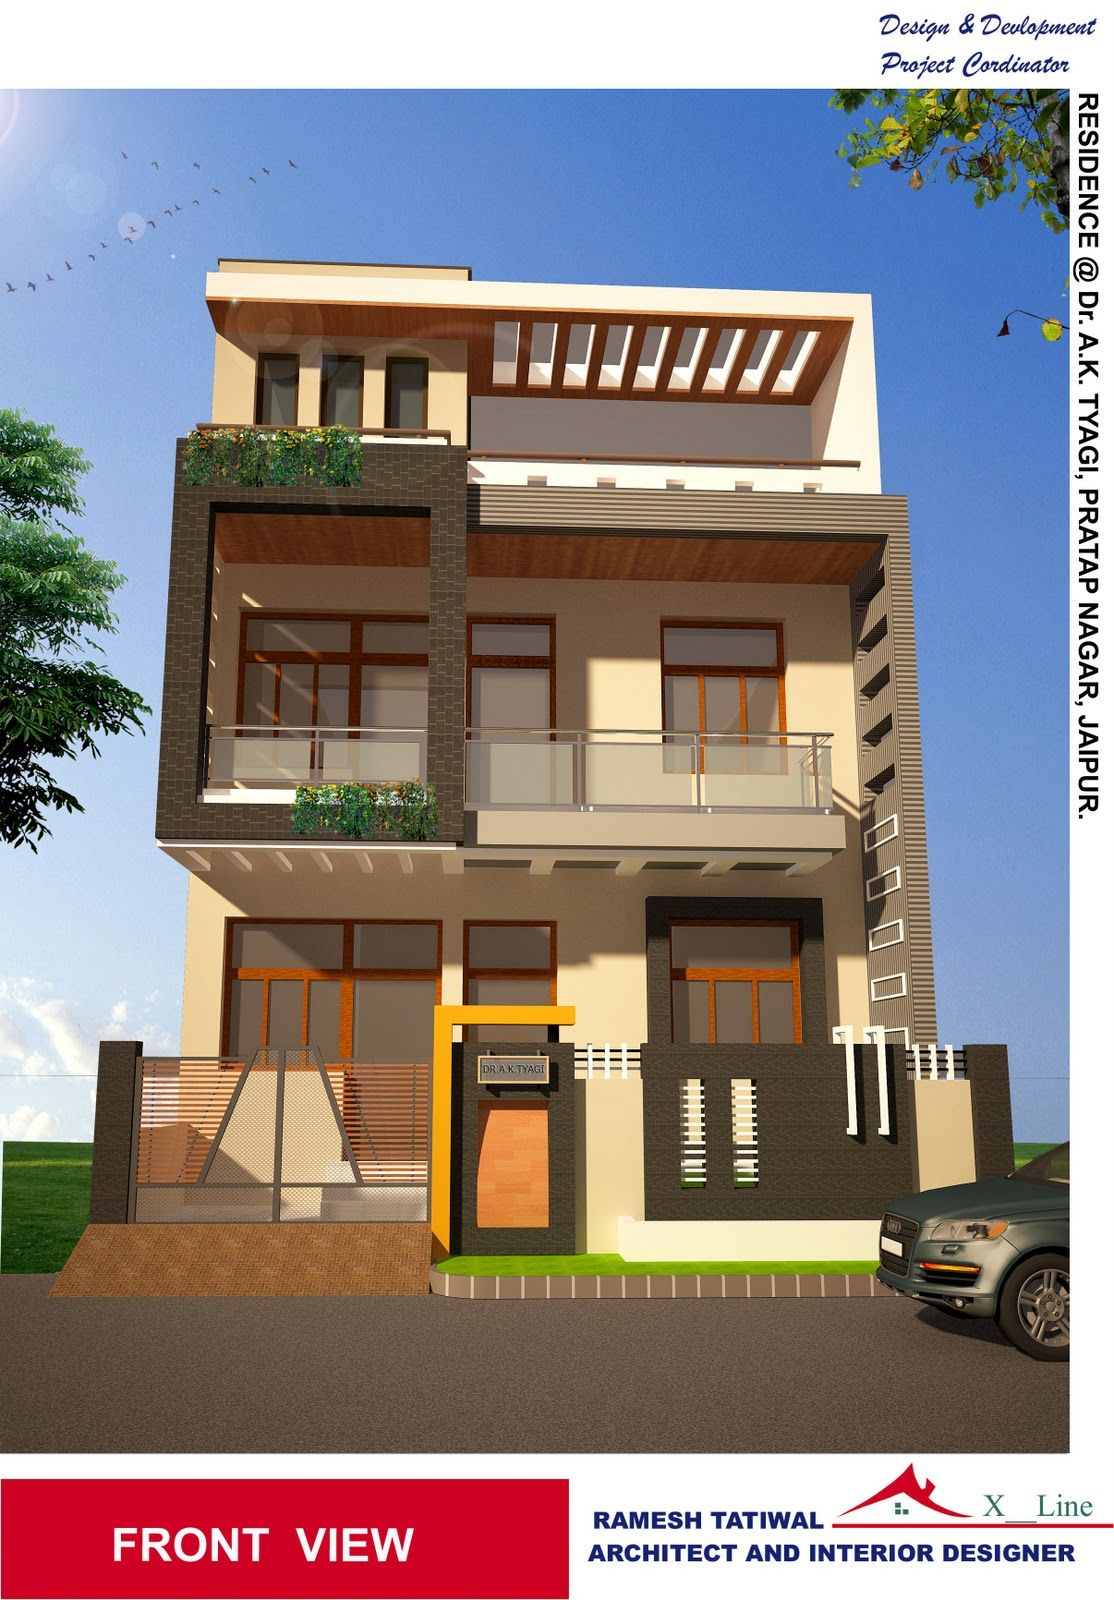 Housedesigns modern indian home architecture design from for Best architect design for home